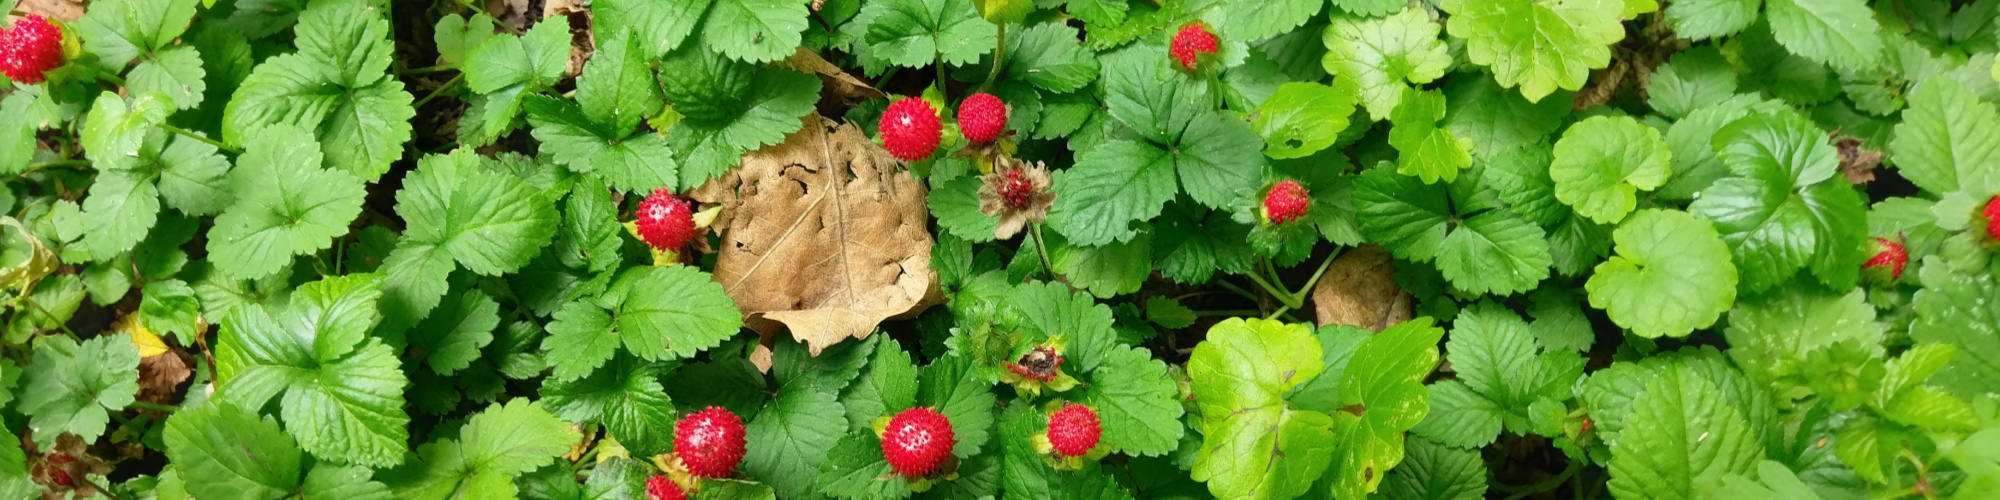 Wild strawberies in the Belgian Voer region